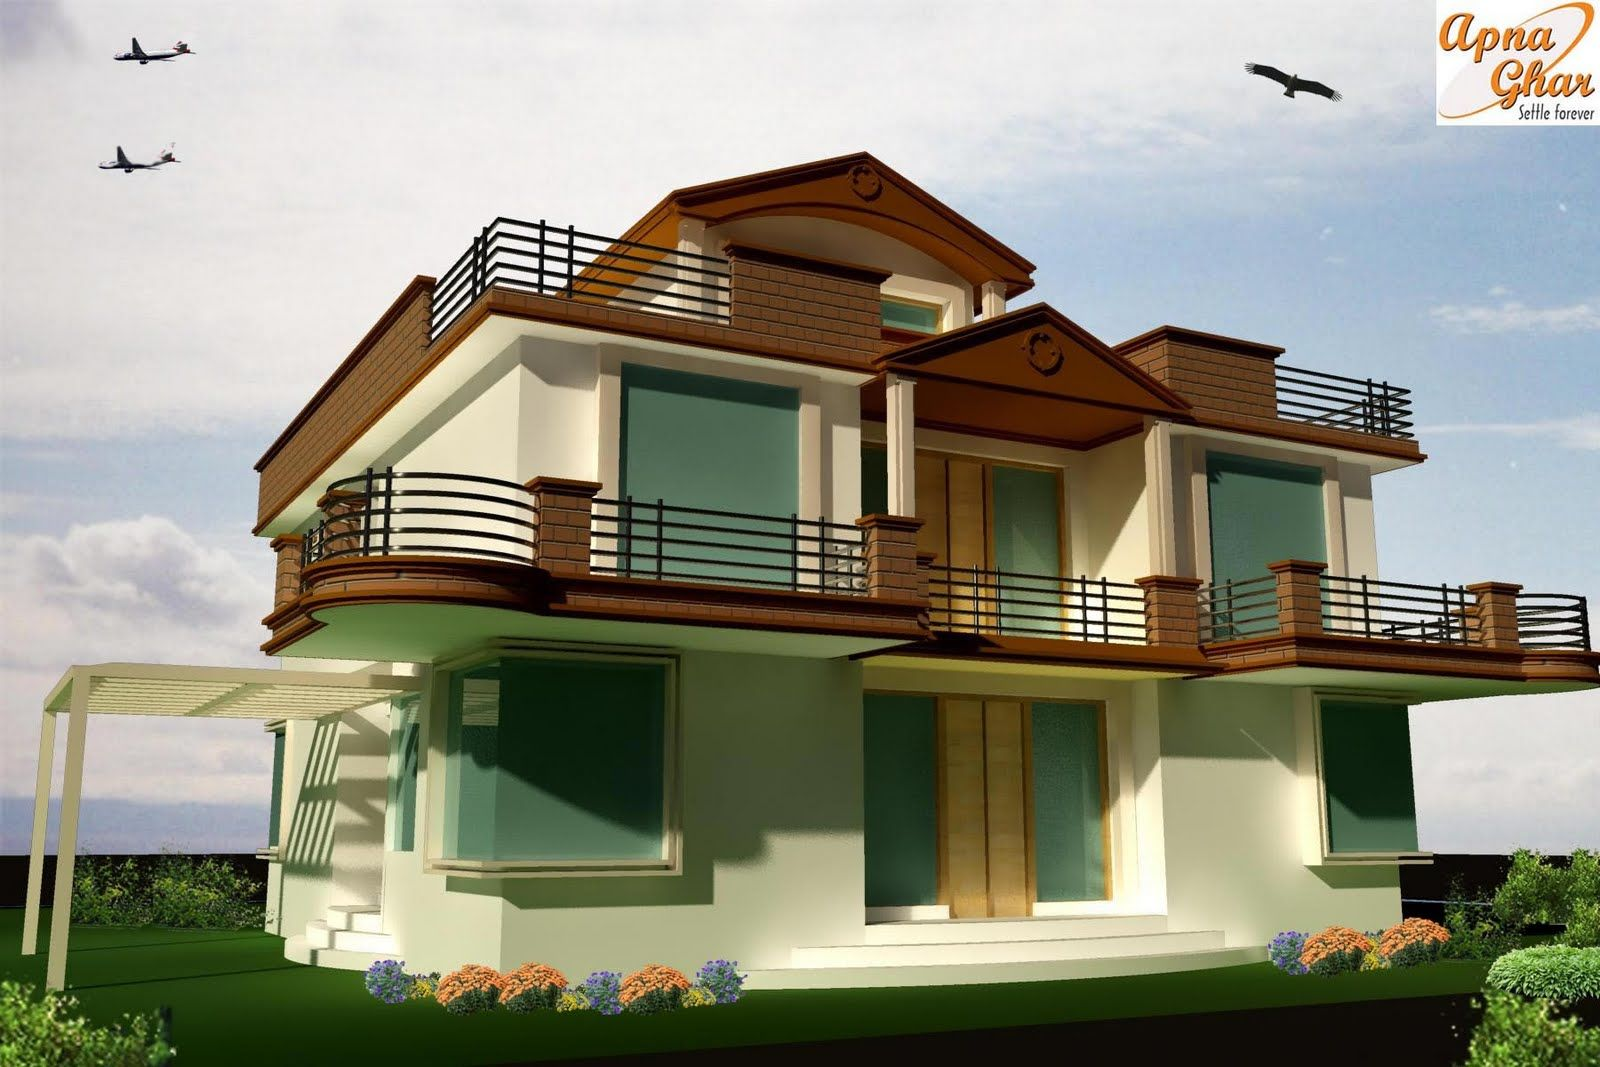 Architectural designs modern architectural house plans for Architects house plans